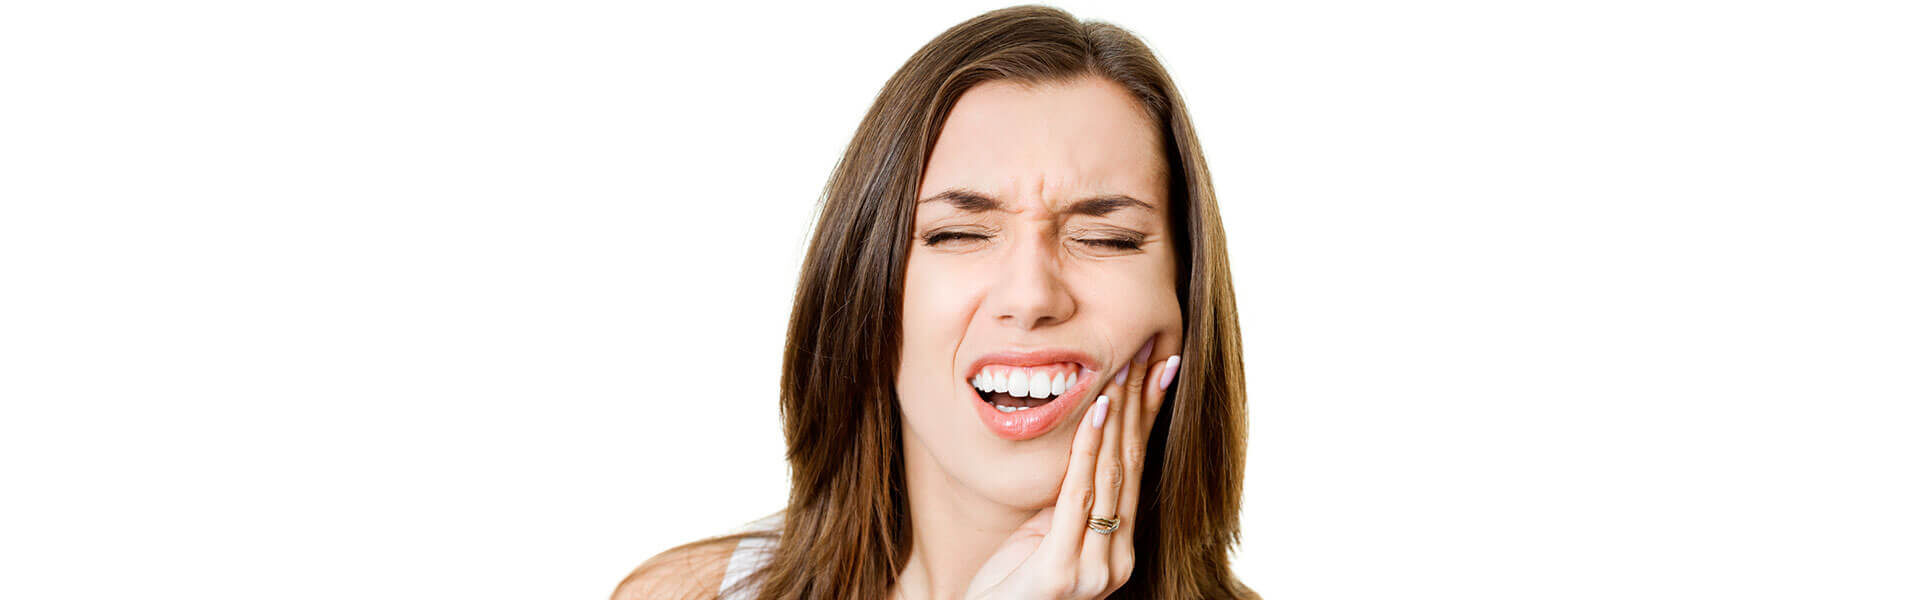 Wondering What's Causing Your Jaw Pain?